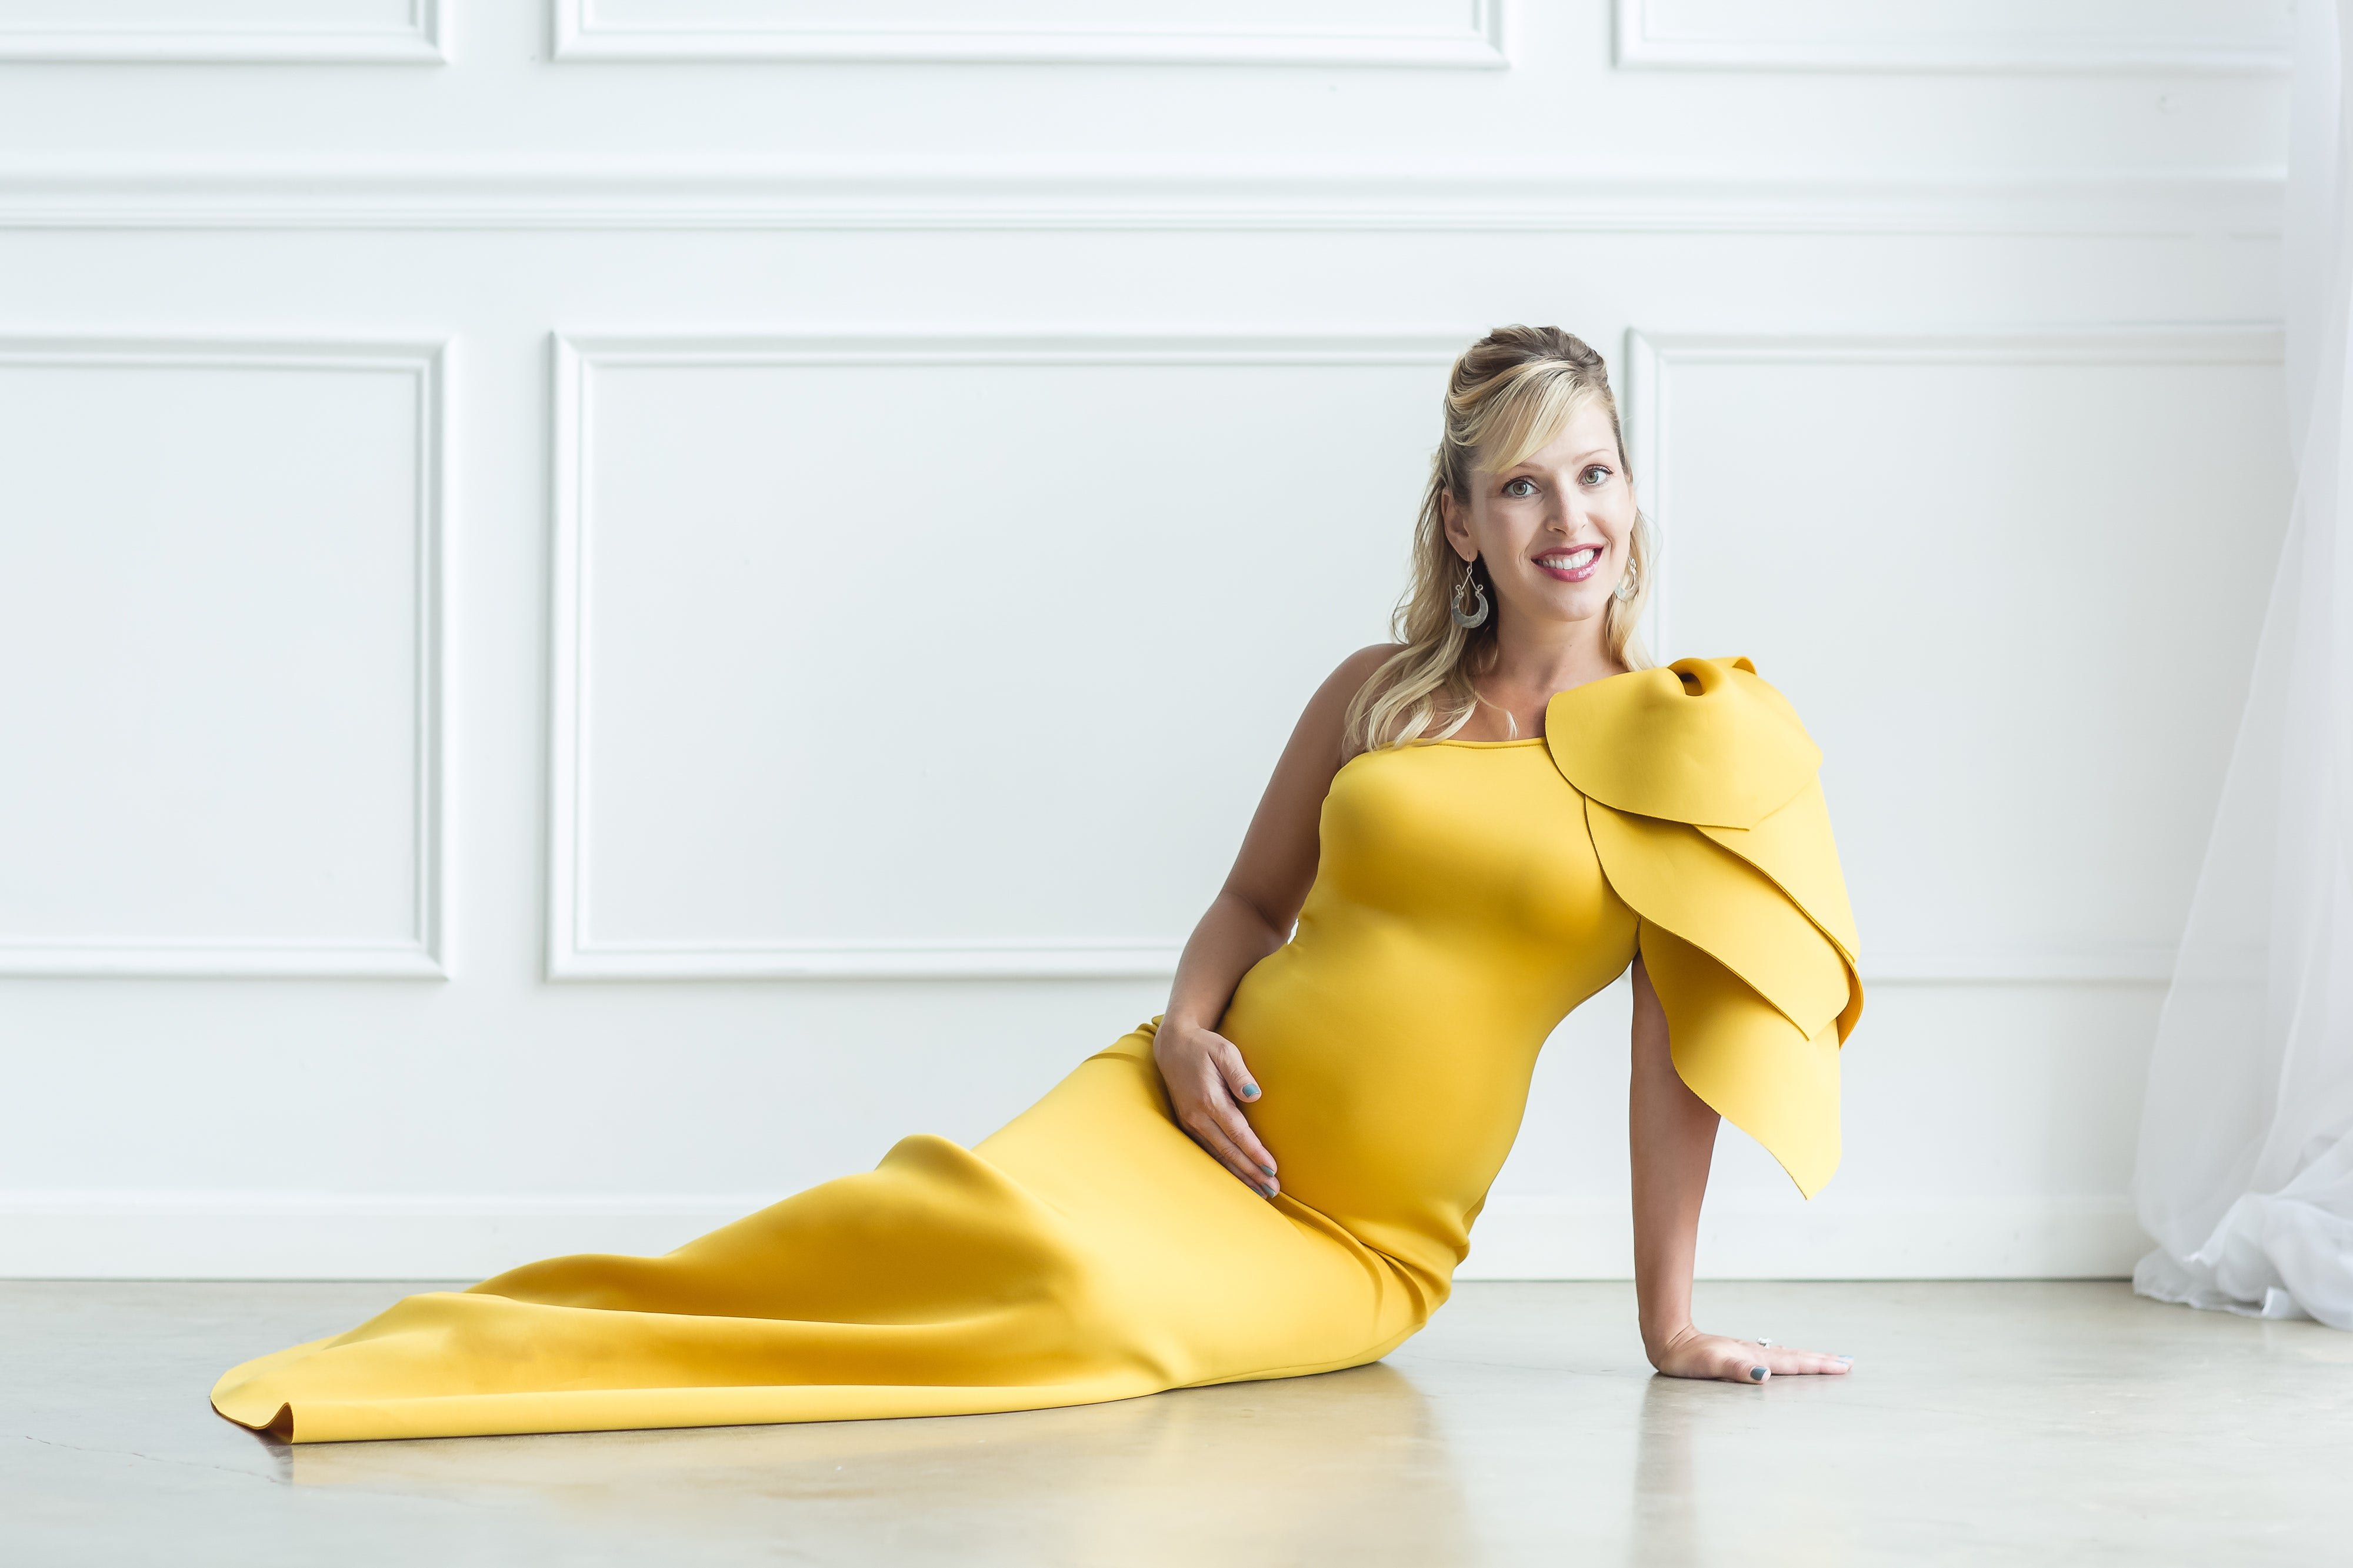 yellow maternity dress for photoshoot